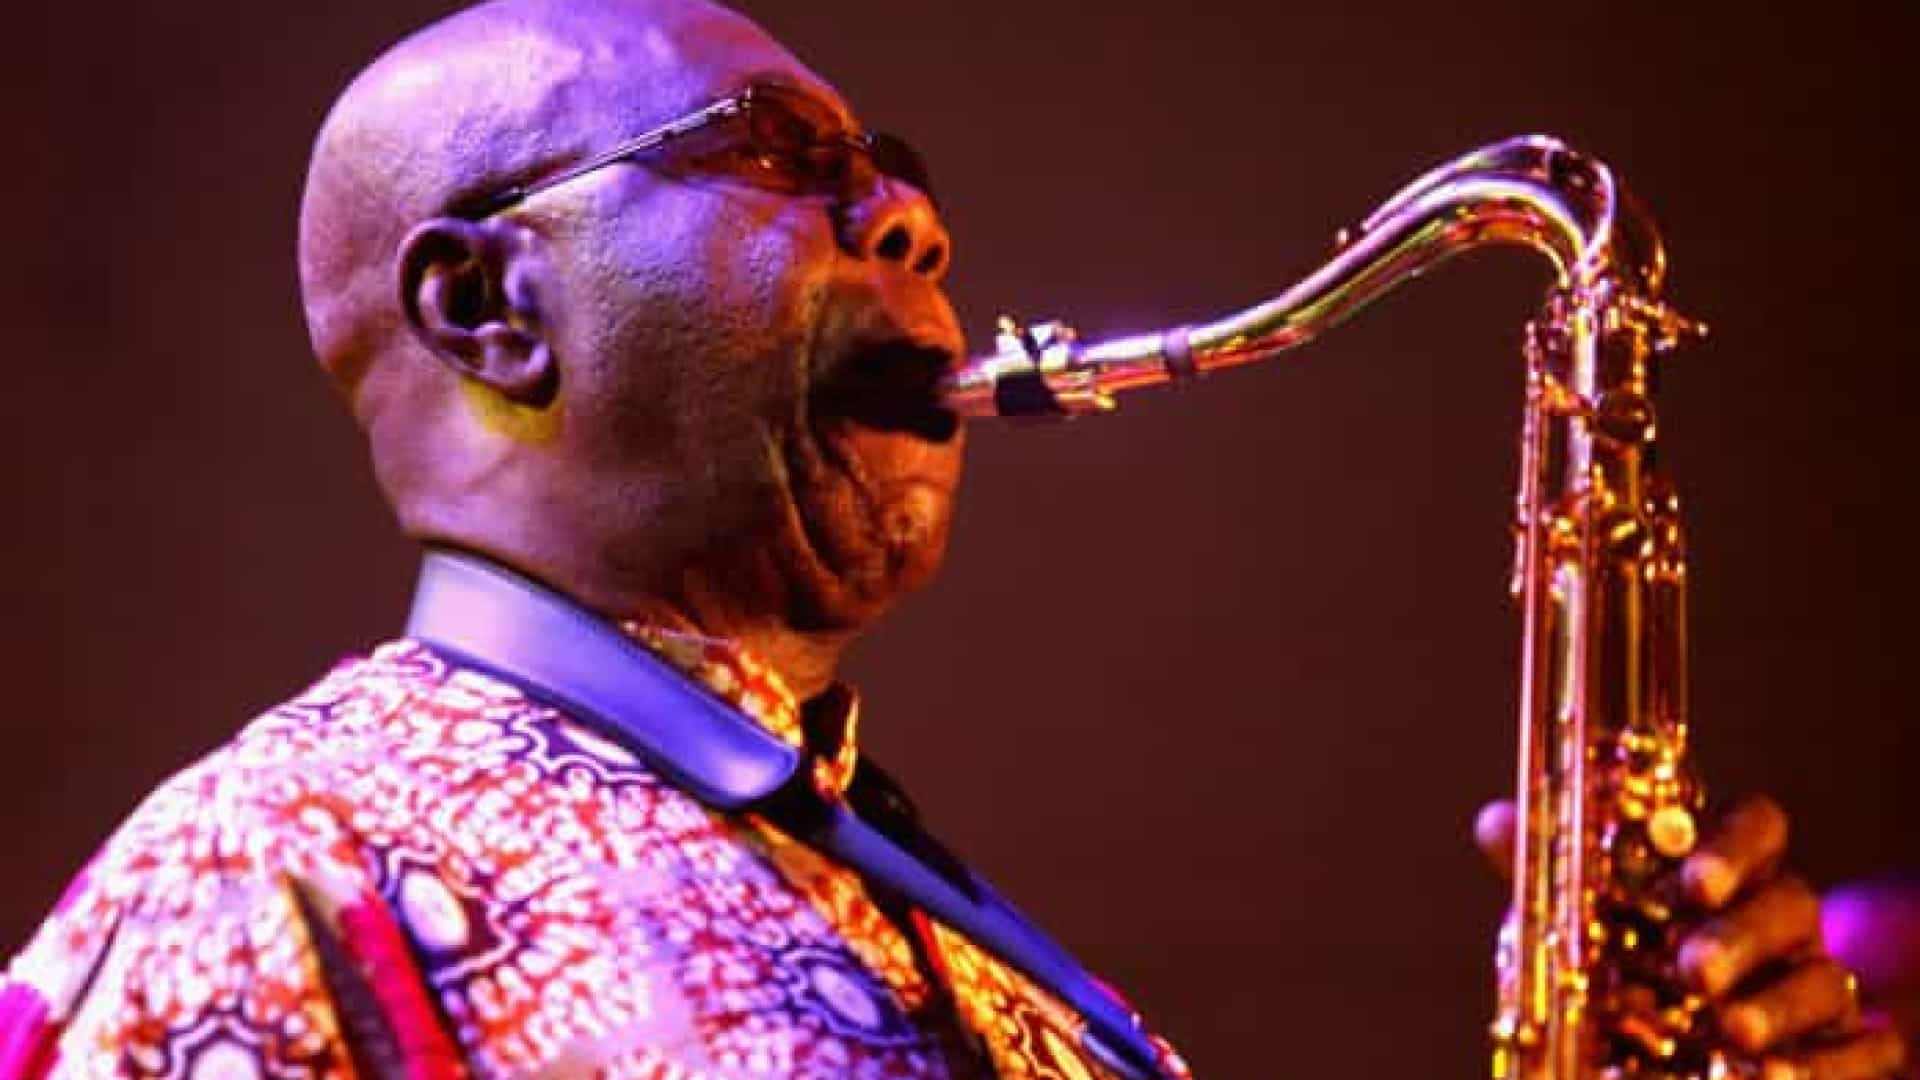 Manu Dibango, lenda do jazz, morre após ser diagnosticado com Covid-19